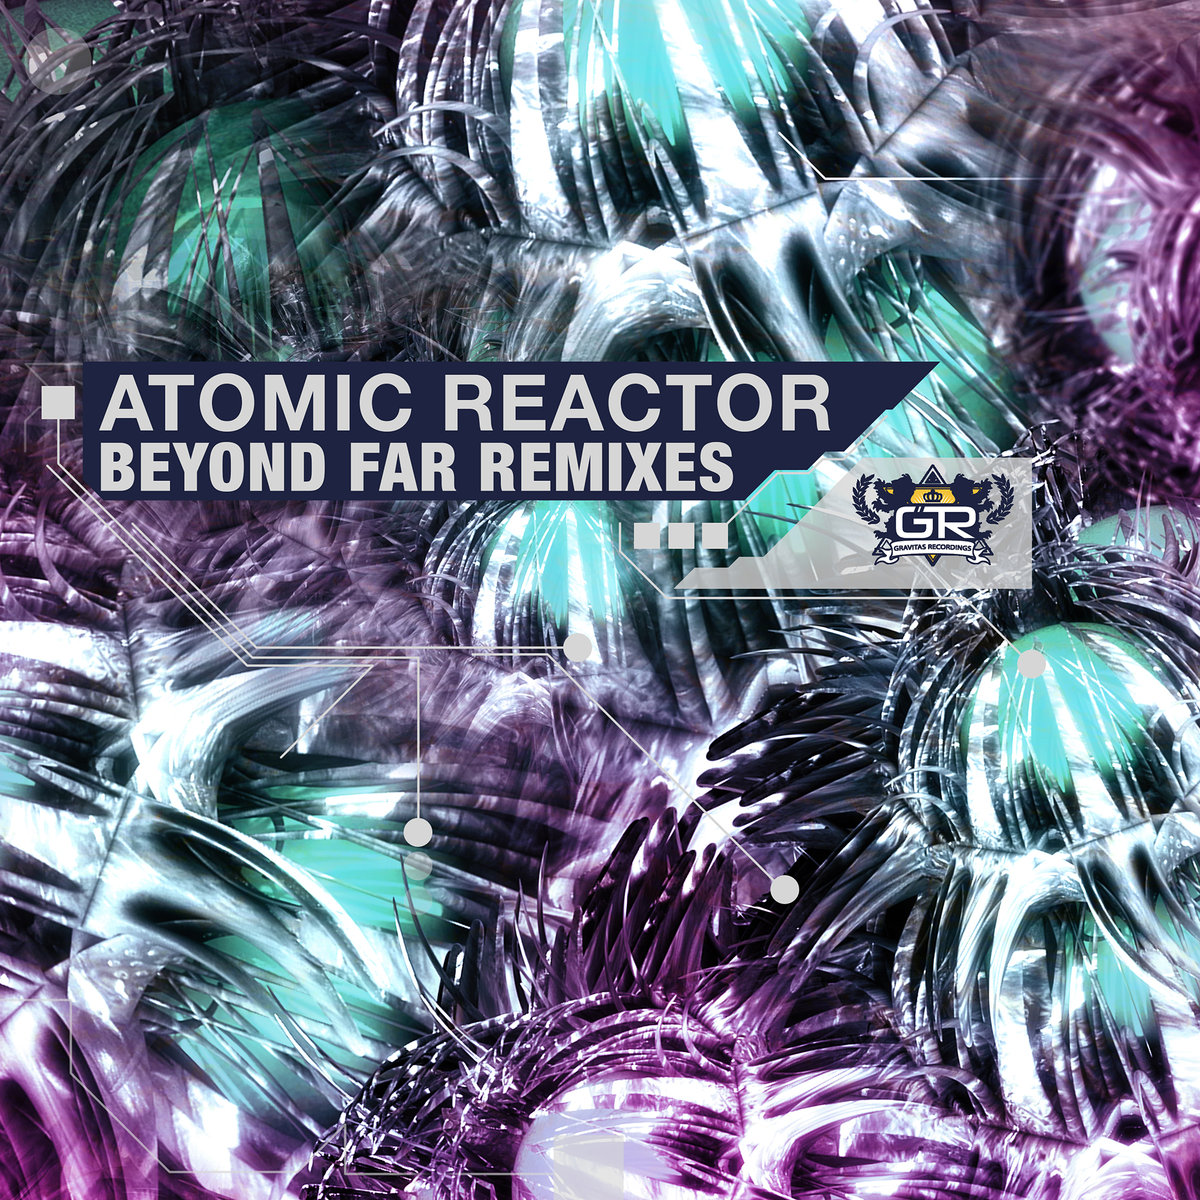 Atomic Reactor - Beyond Far (Dubvirus Remix) @ 'Beyond Far Remixes' album (Austin)